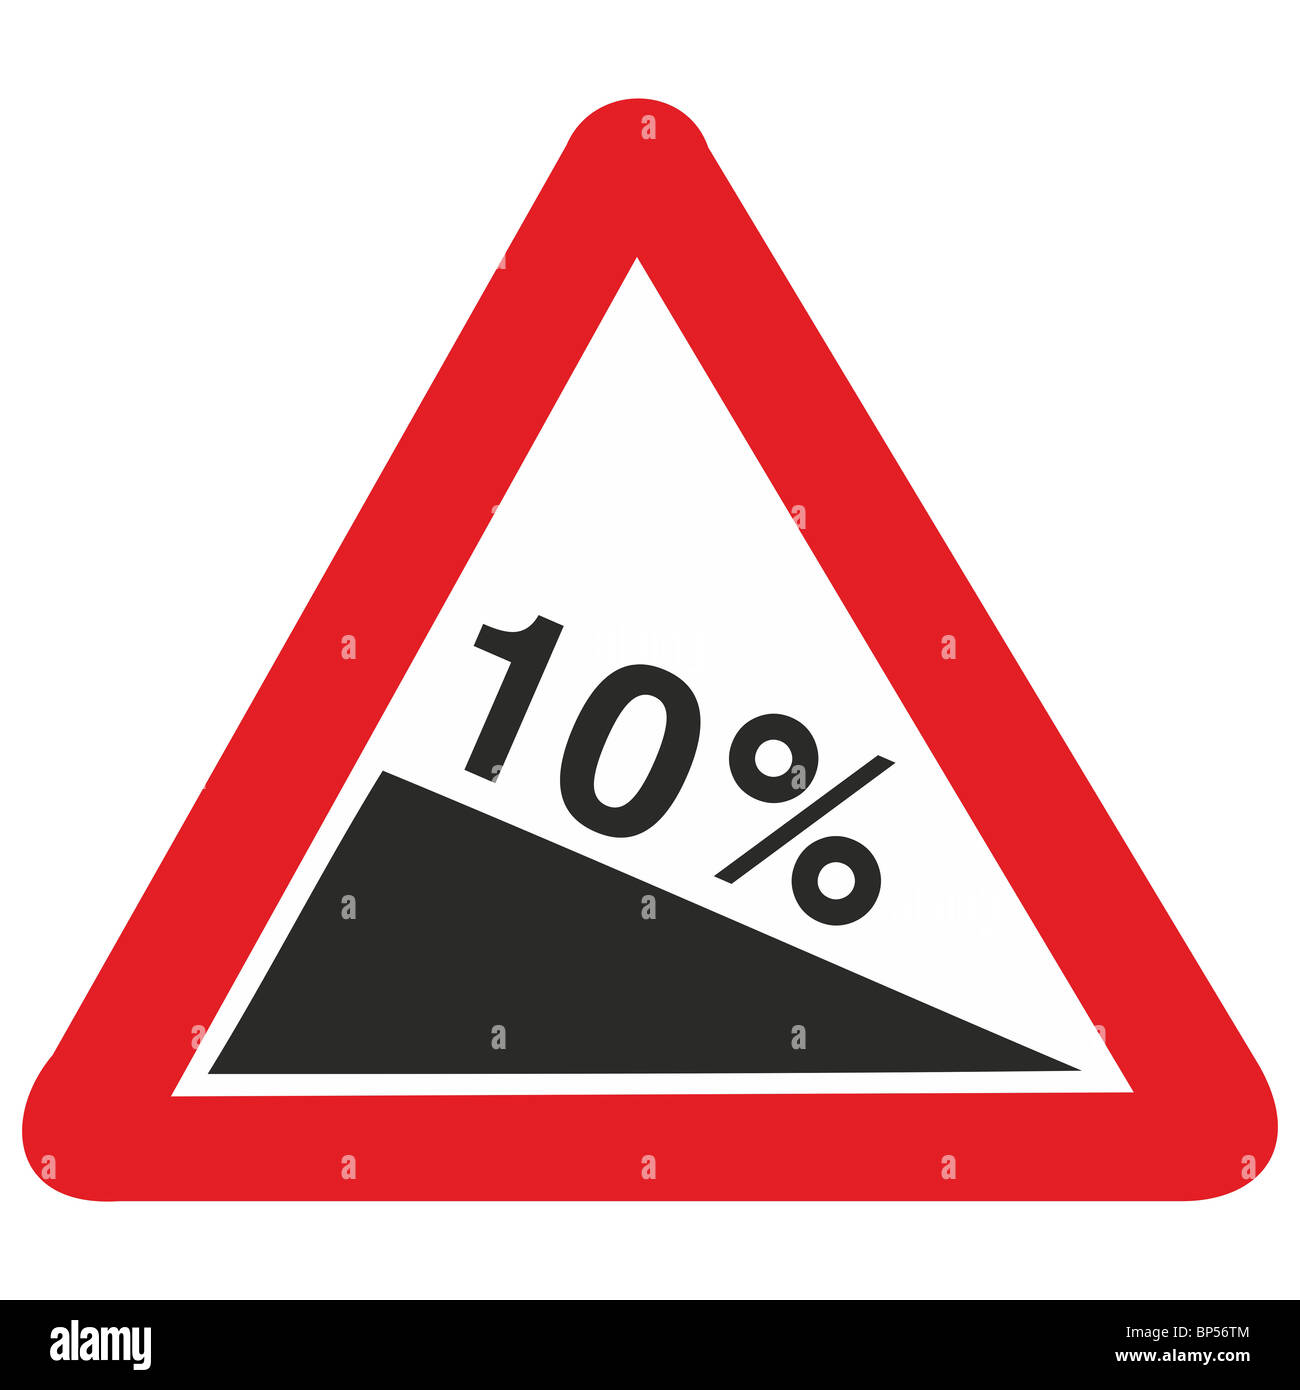 uk road sign steep hill gradient down slope downhill 10 percent ten - Stock Image